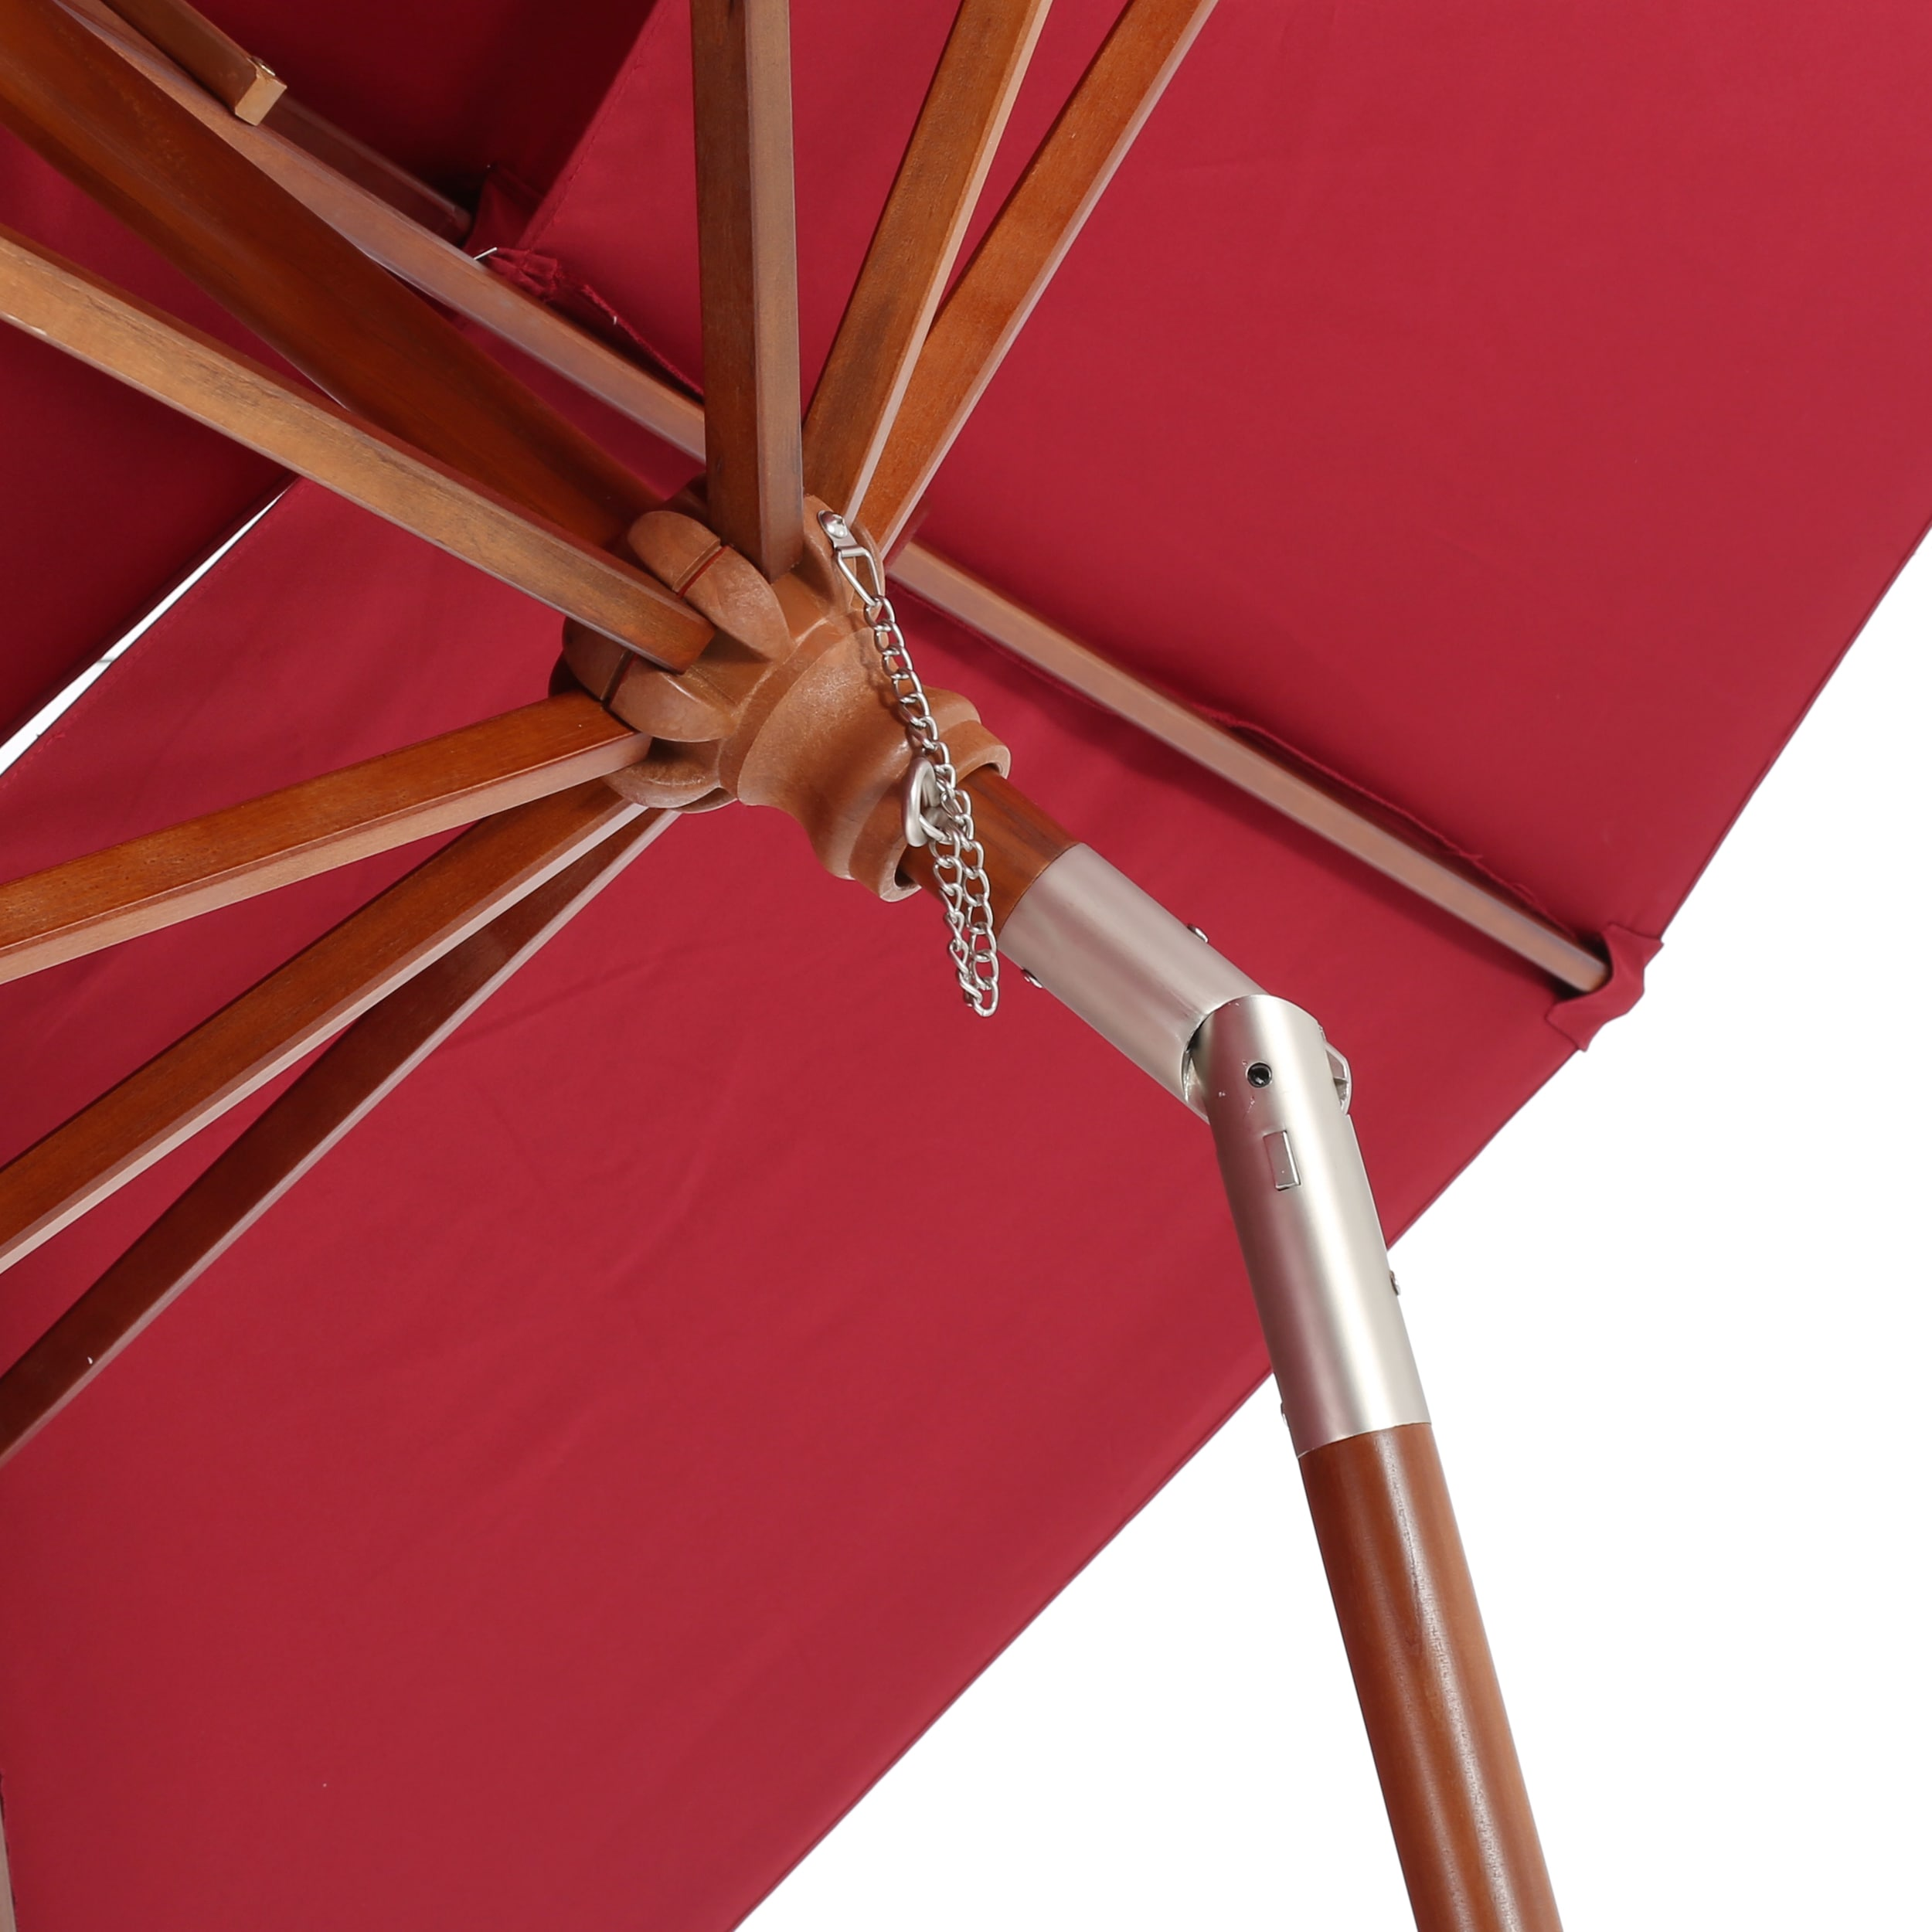 Toluca 8.75-foot Tilt Canopy Umbrella by Christopher Knight Home Outdoor - Free Shipping Today - Overstock - 18139806 & Toluca 8.75-foot Tilt Canopy Umbrella by Christopher Knight Home ...